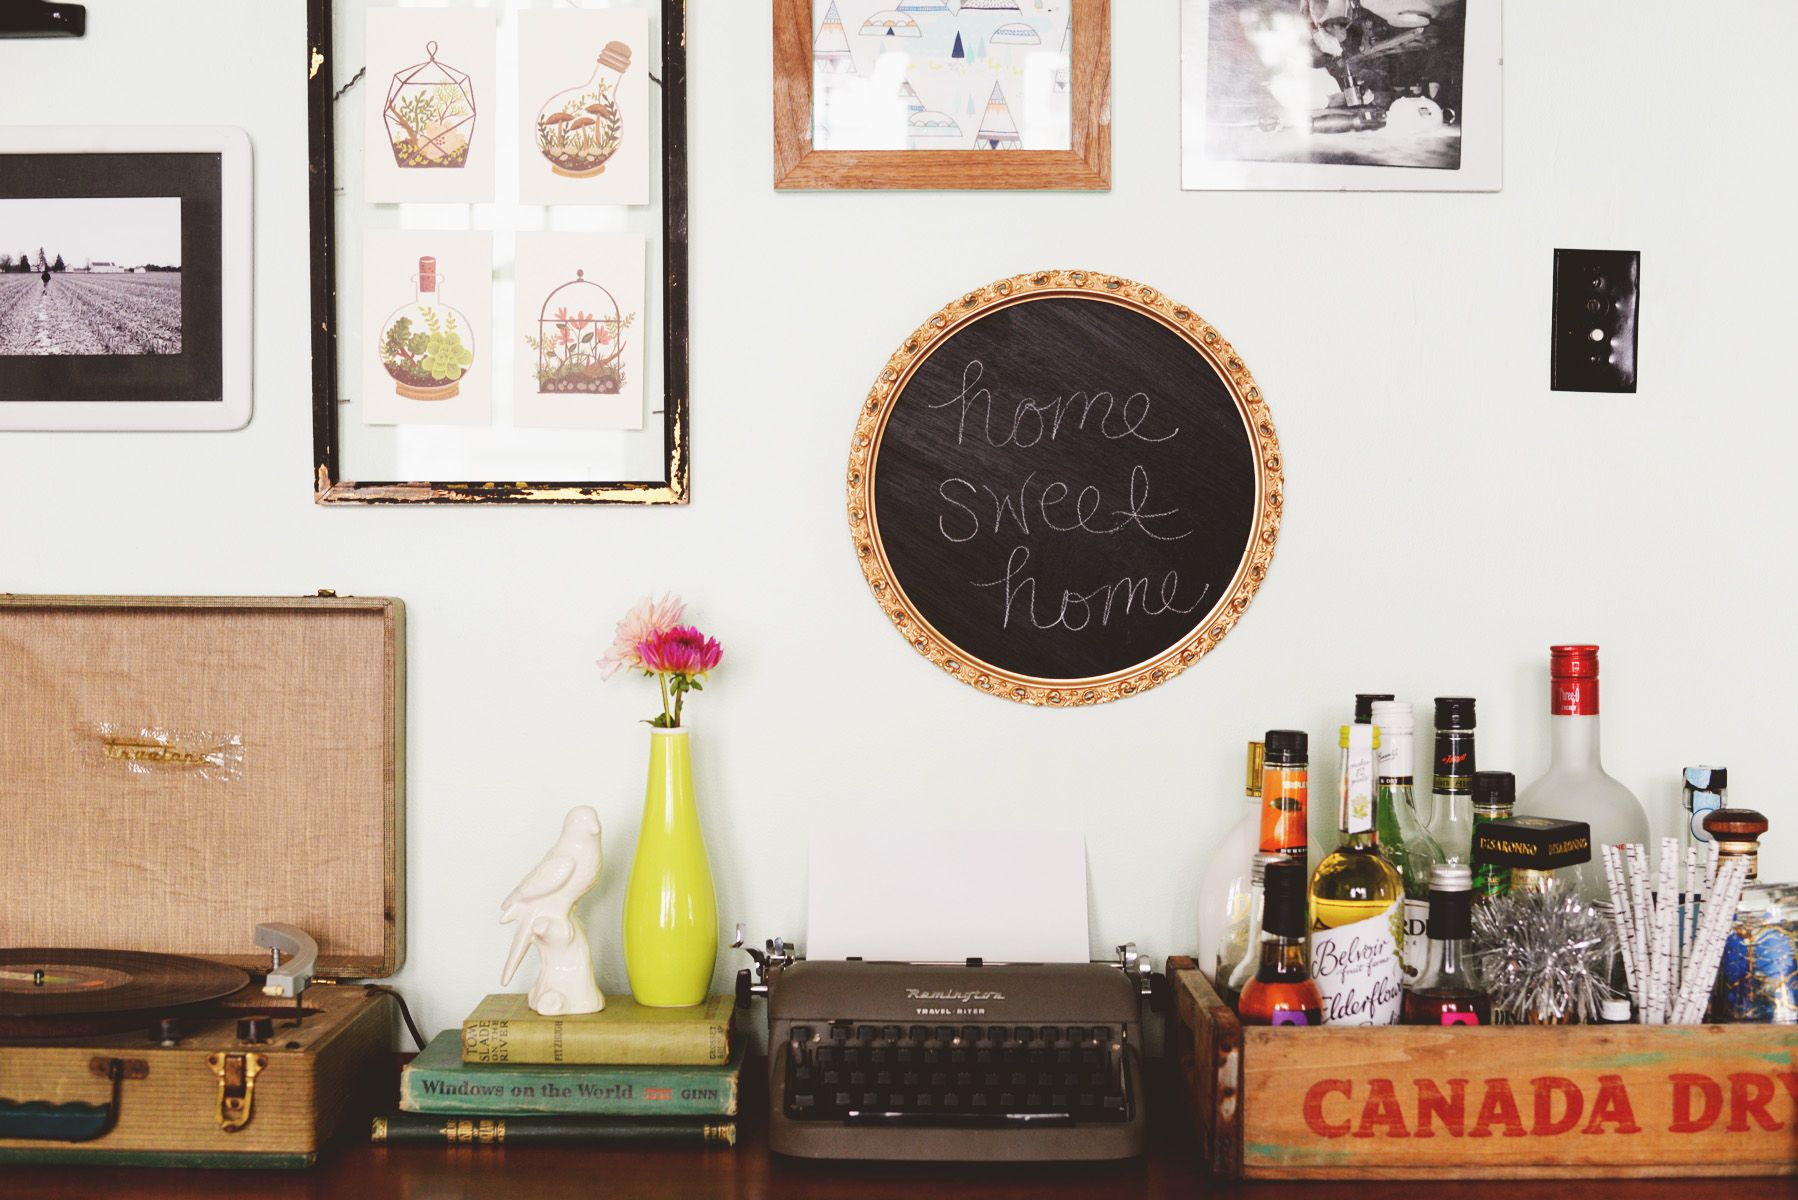 Home sweet home chalkboard framed